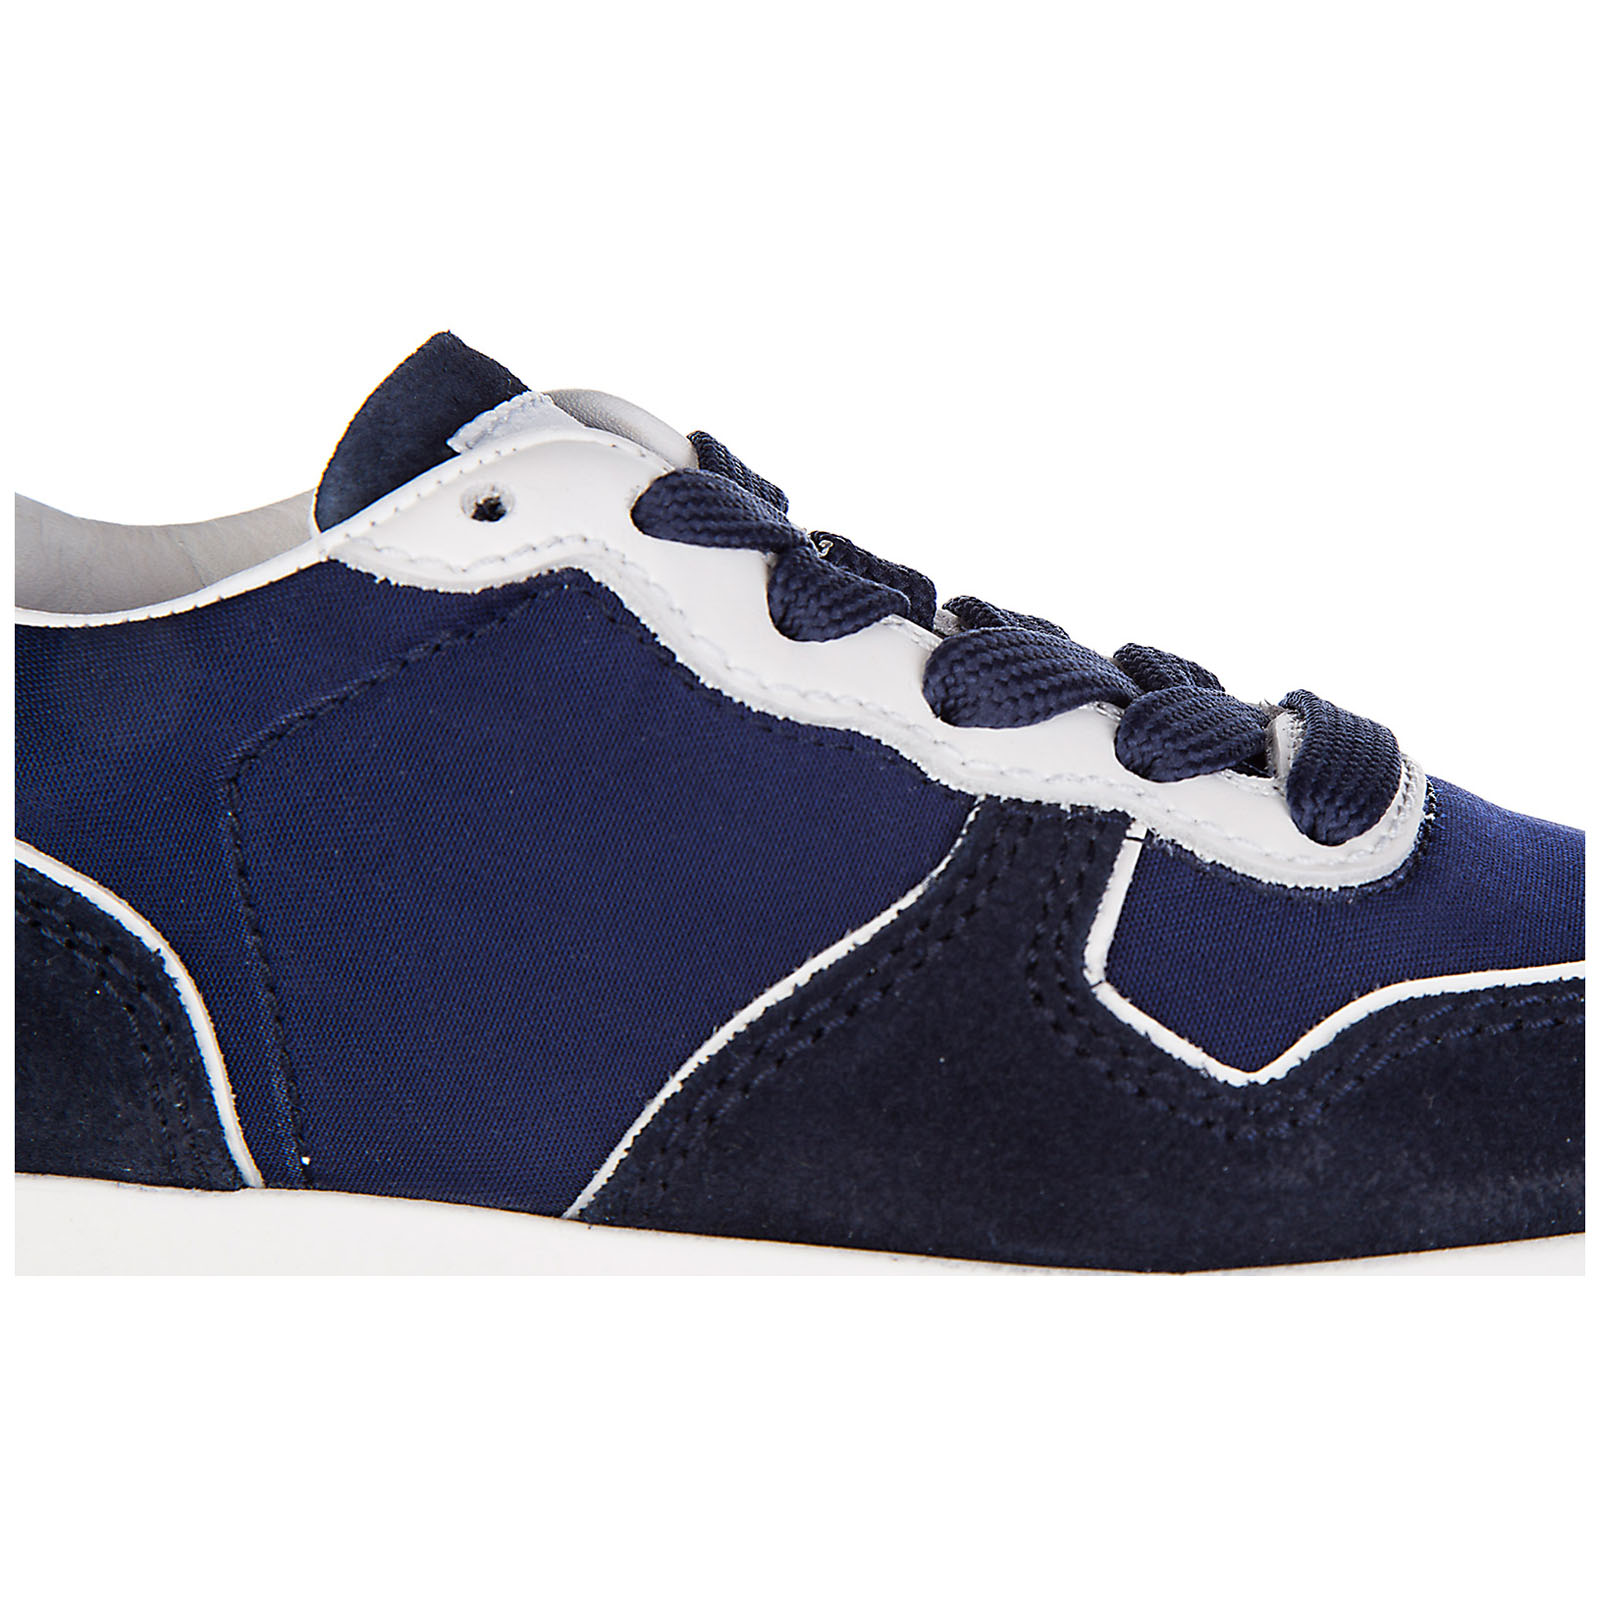 Boys shoes child sneakers suede leather